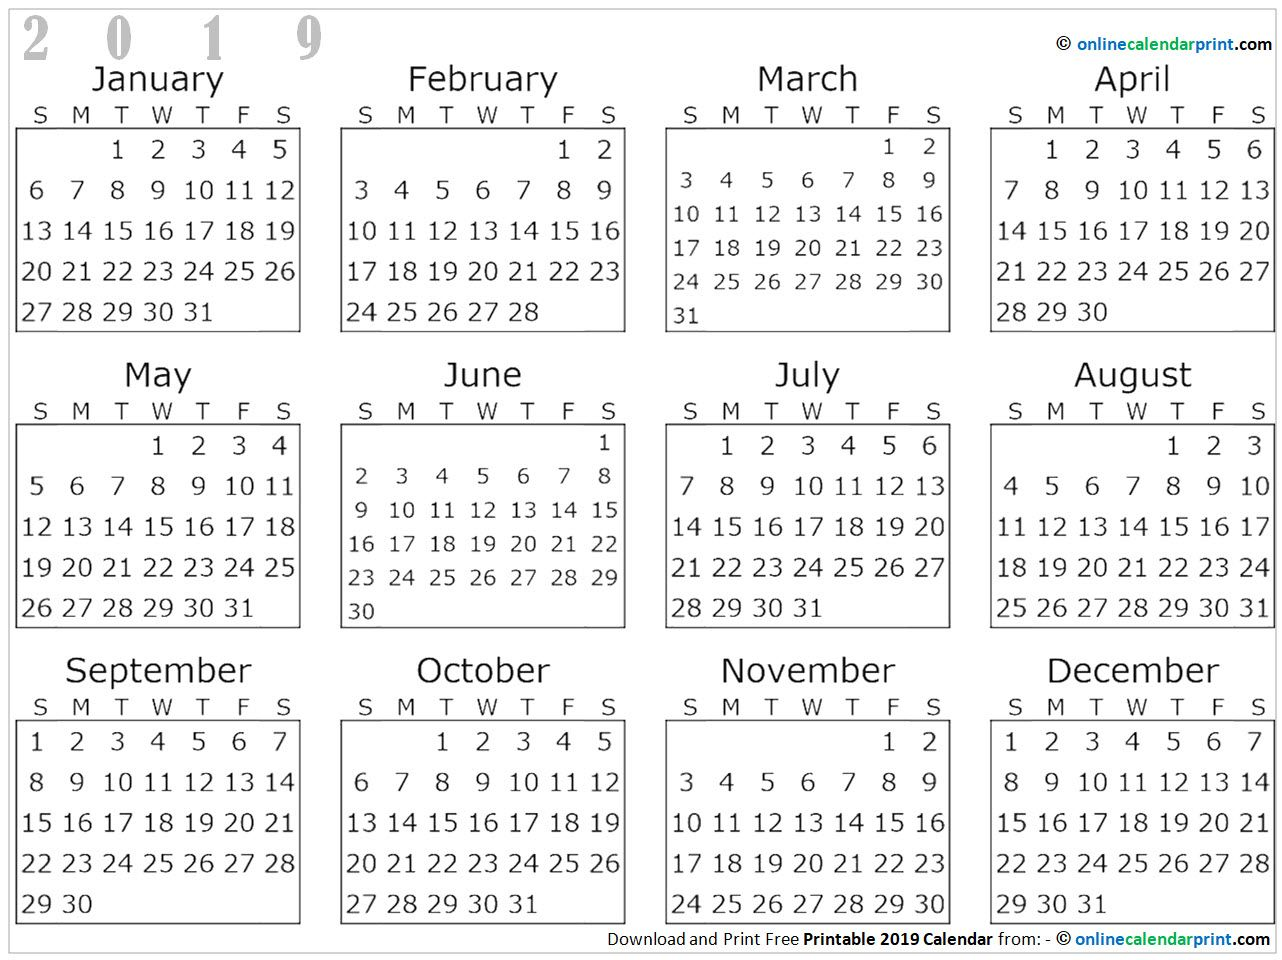 Free Printable Yearly 2019 Calendar With Images 2019 Calendar